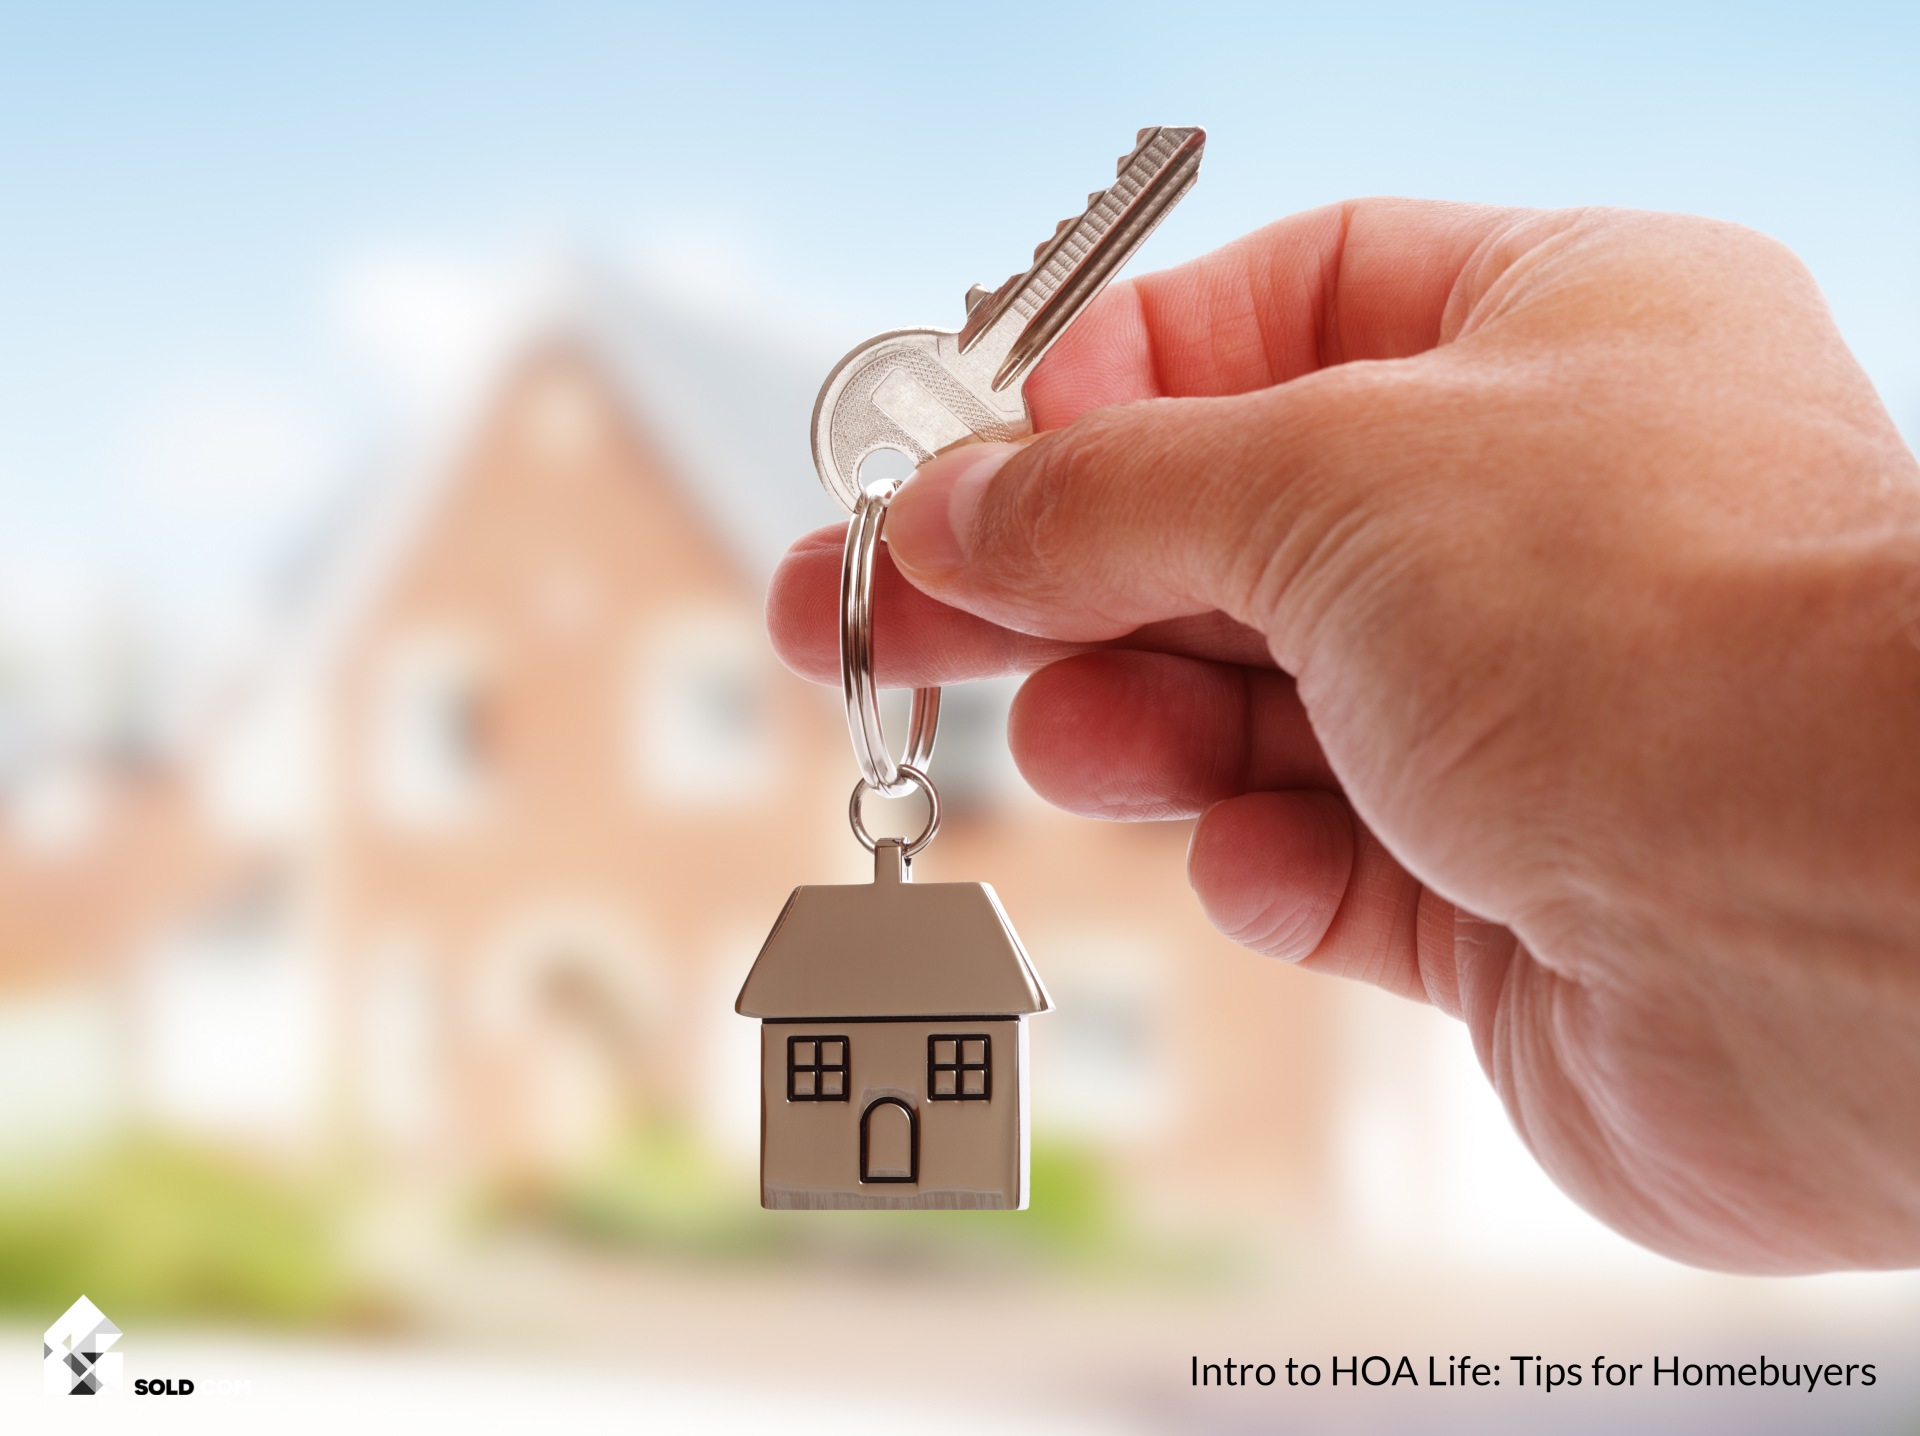 Intro to HOA Life: 6 Things to Know About Buying into a Homeowners Association